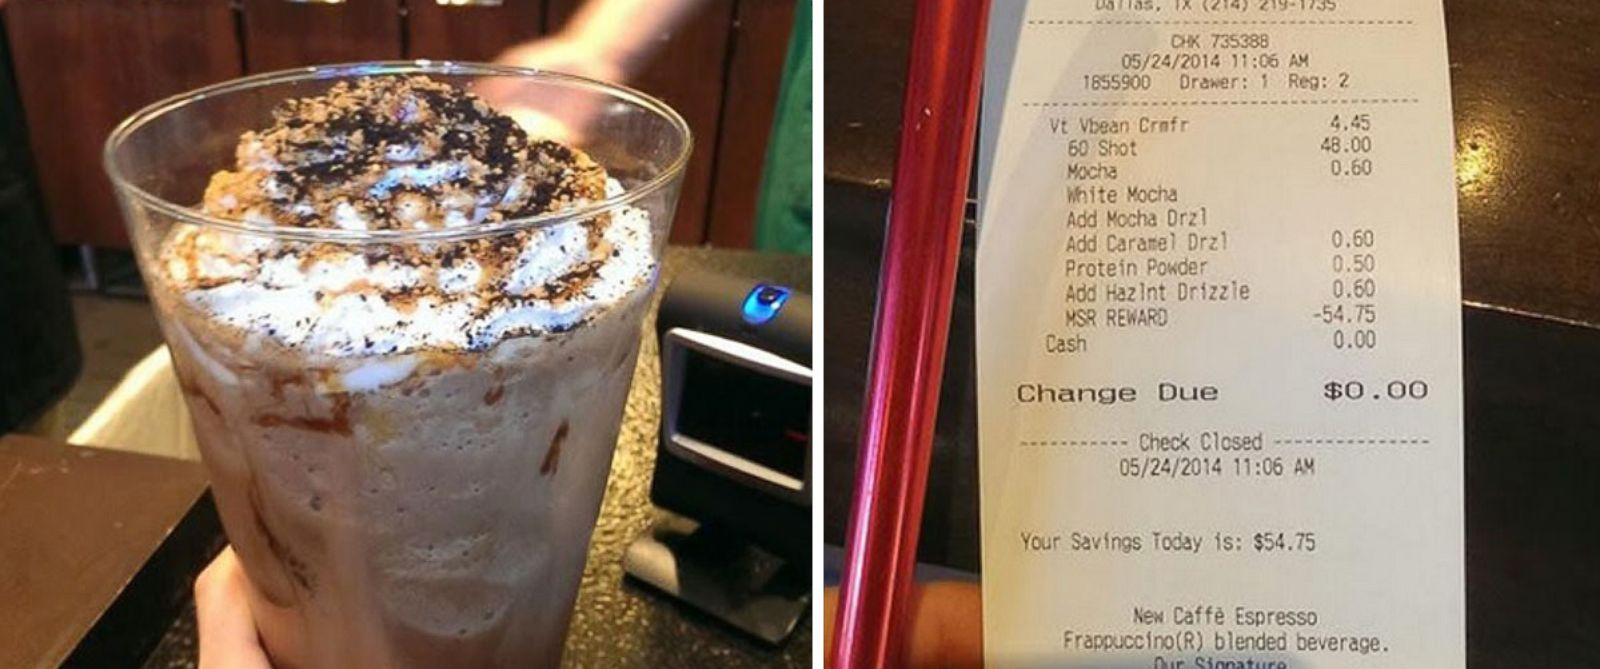 PHOTO: Taking advantage of Starbucks free loyalty program, a customer created a custom drink that cost $54.75, but it was free for him.